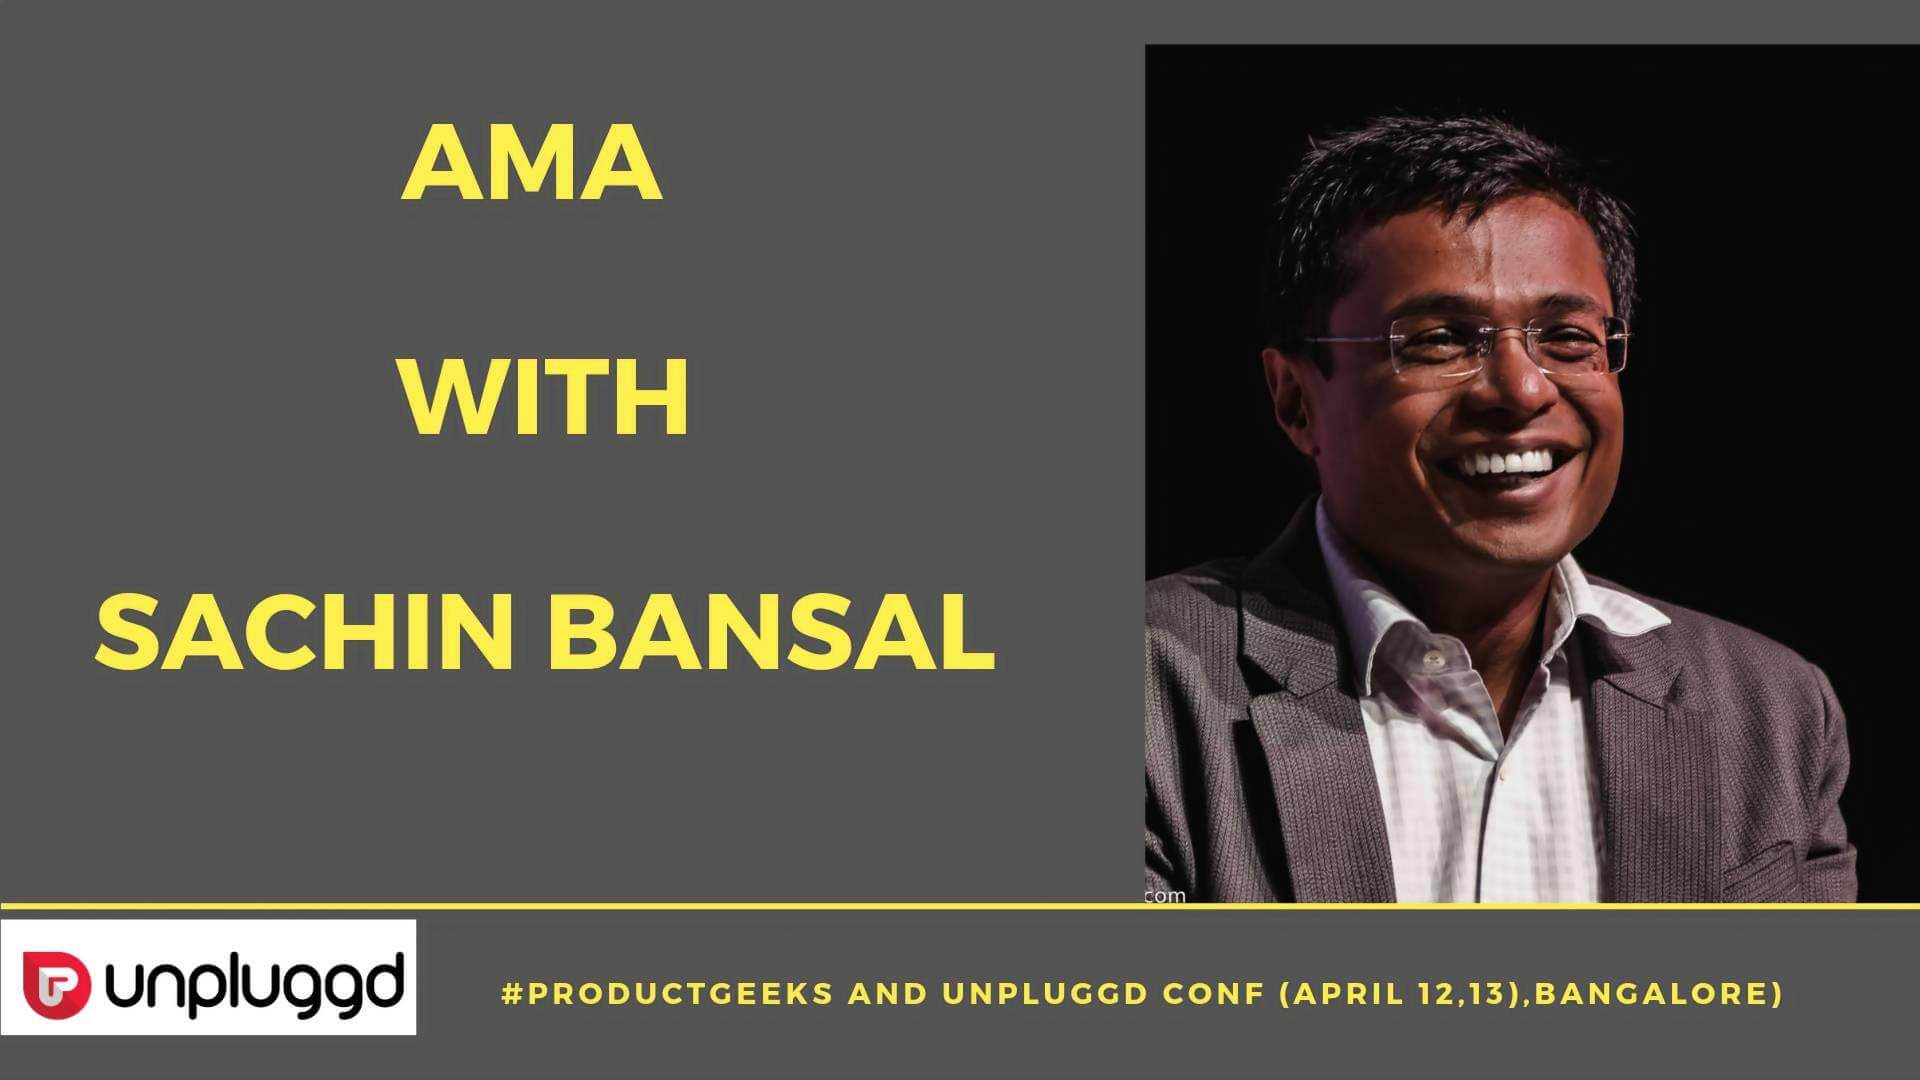 How to Meet Sachin Bansal In Person